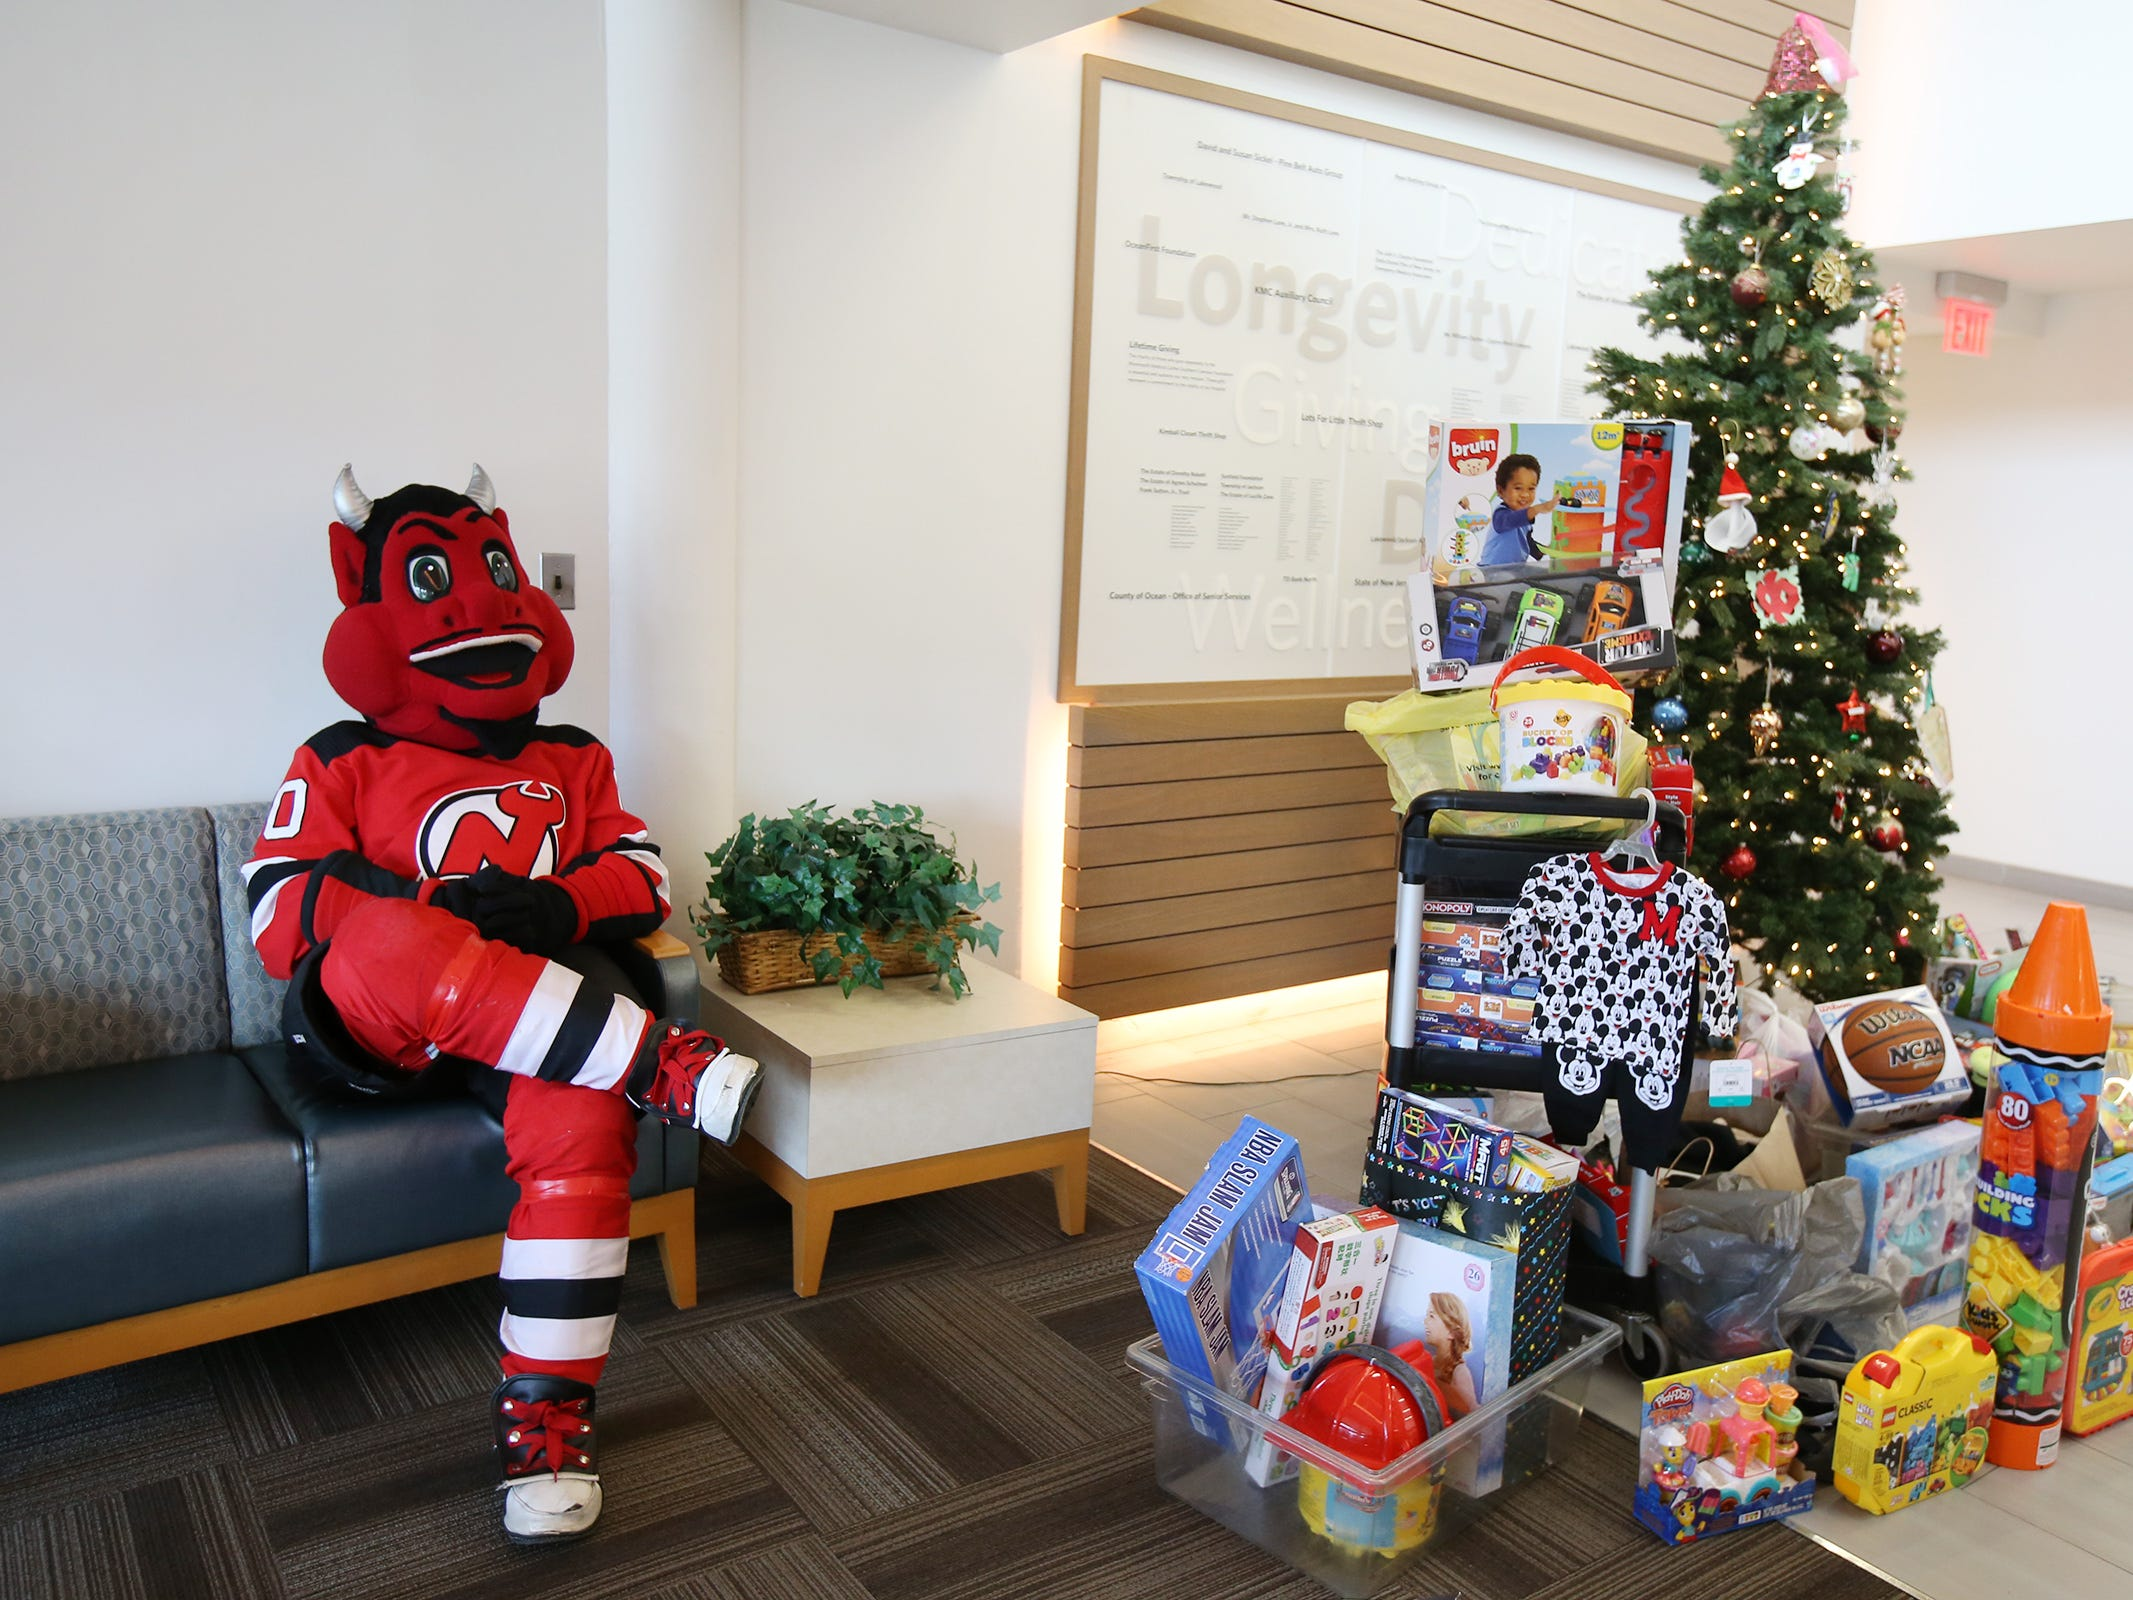 The New Jersey Devils' mascot visits the Monmouth Medical Center Southern Campus in Lakewood, NJ Monday, December 17, 2018. During his visit, he loaded donated toys into a police car with members of the Lakewood PBA and Lakewood Police Department.